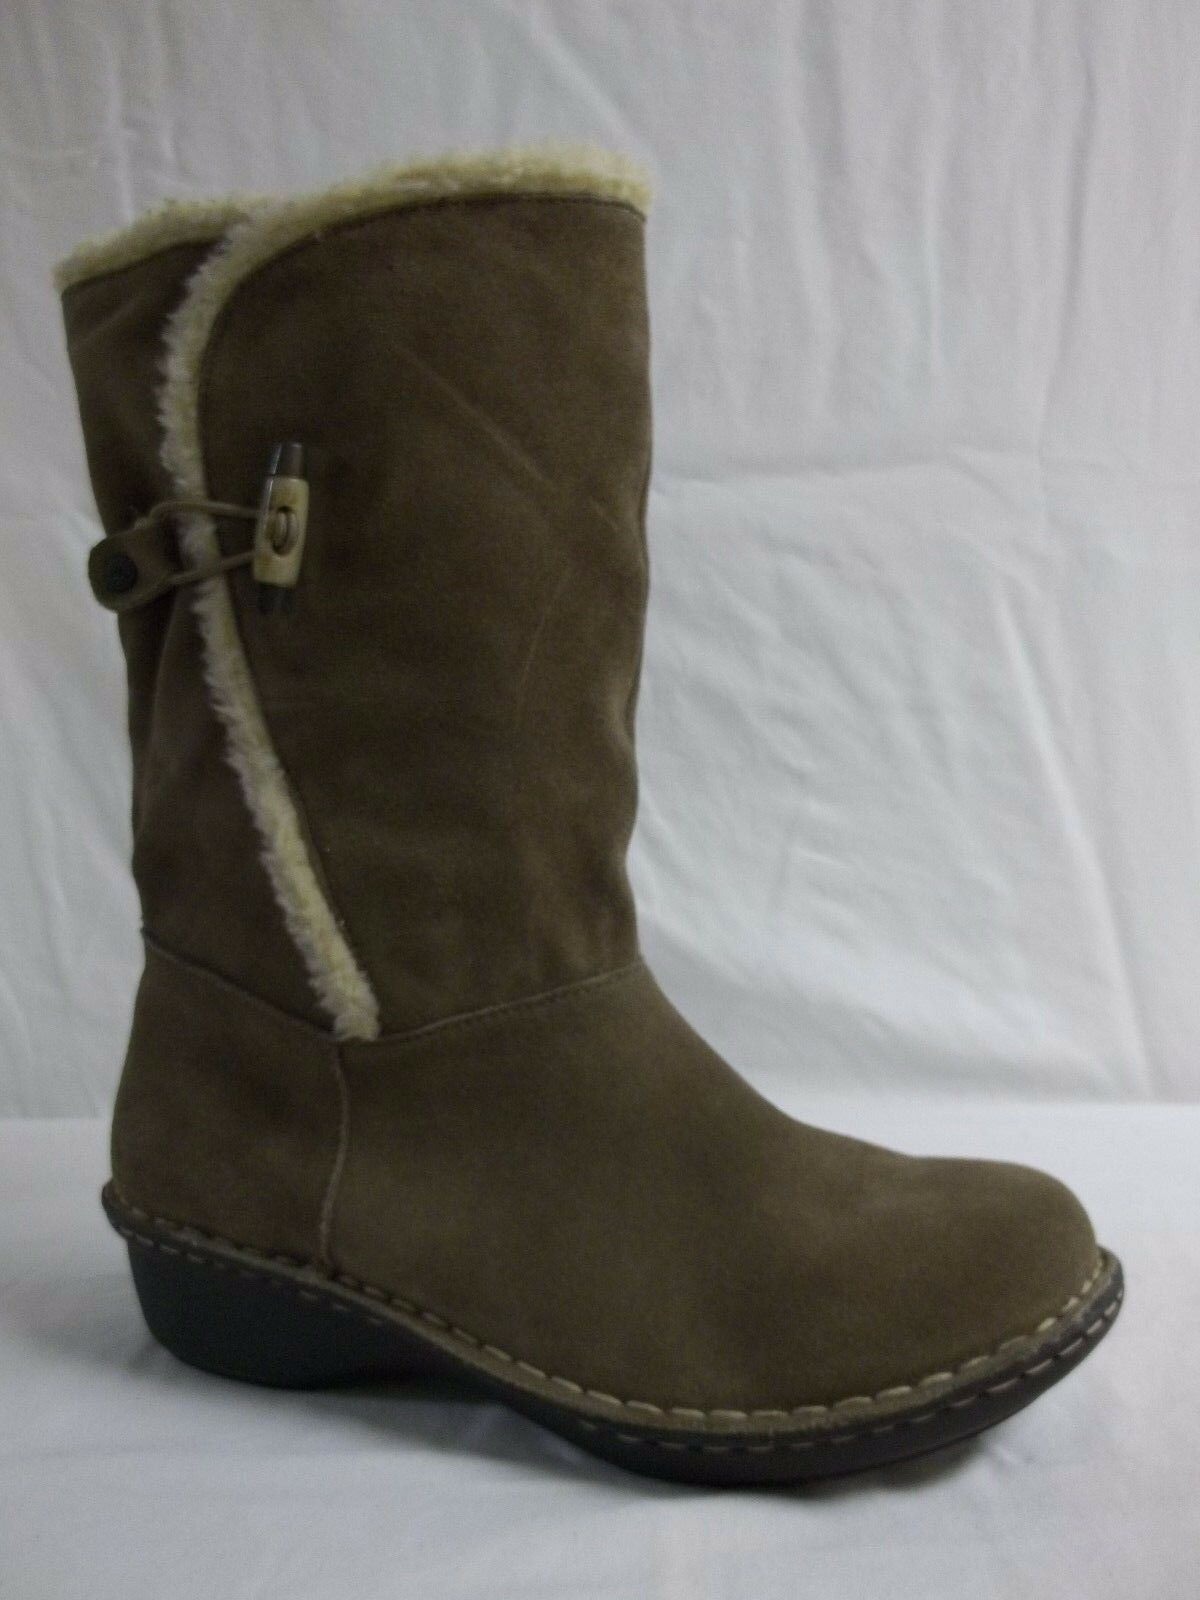 Anne Klein Size 9 M Kresent Taupe Suede Mid Calf Boots New Womens Shoes NWOB